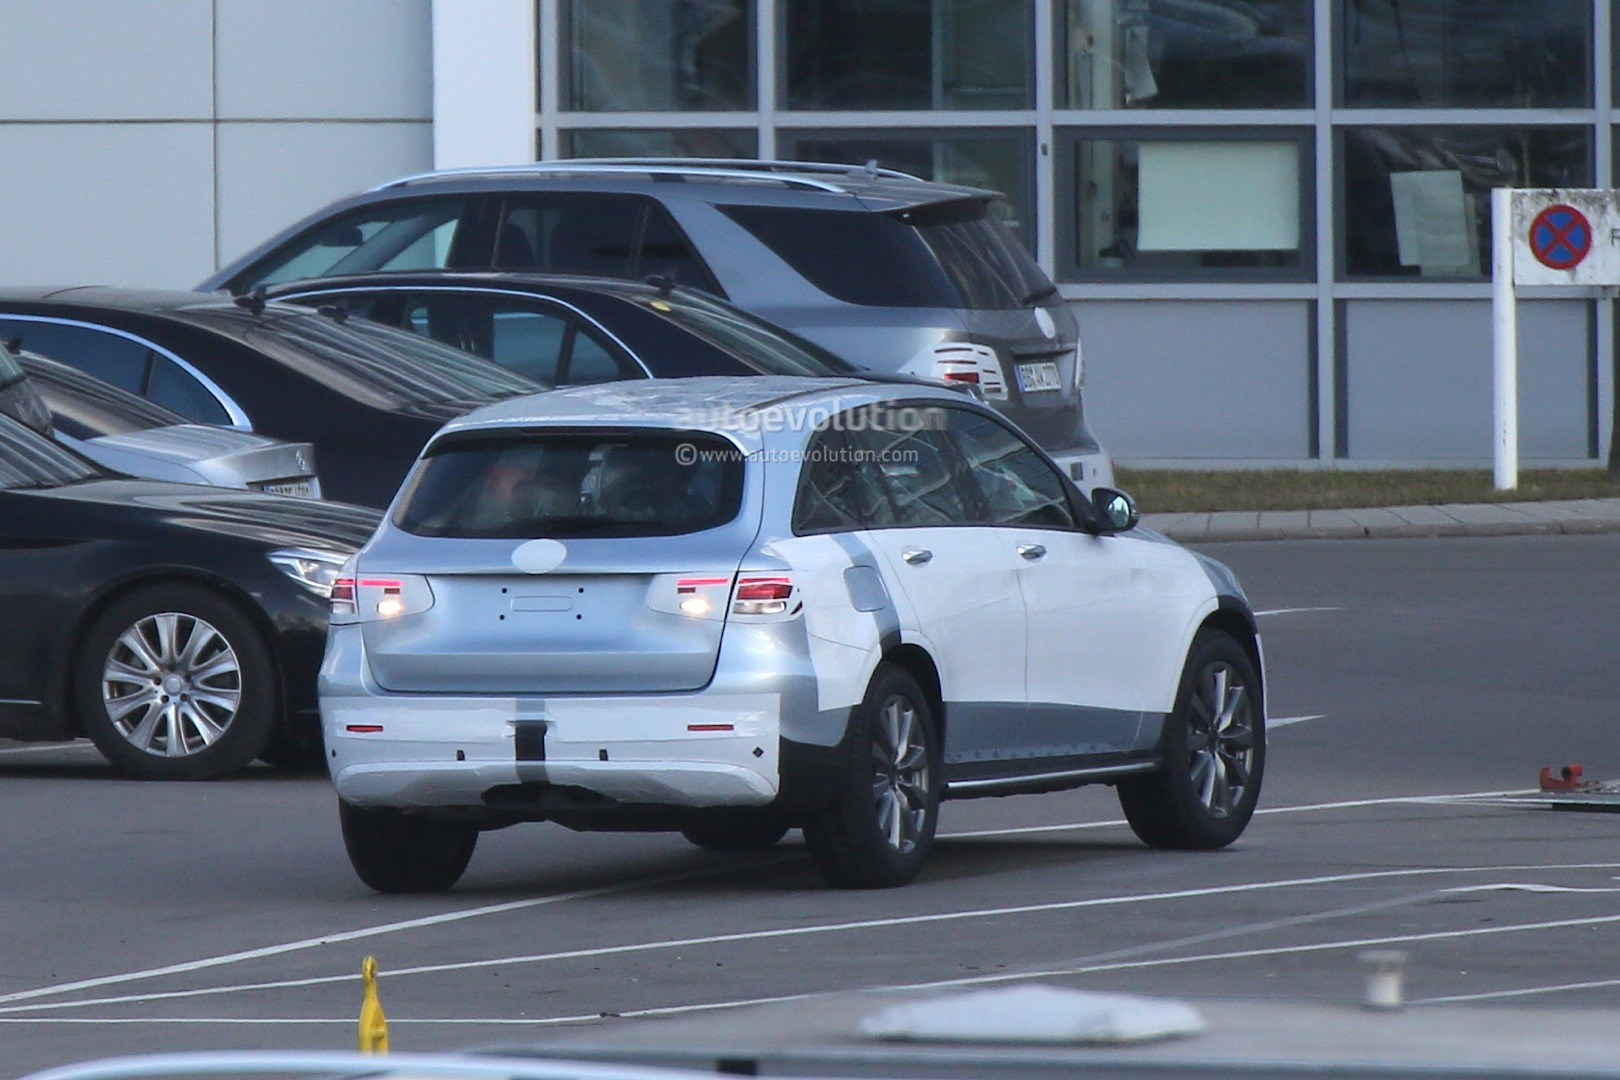 mercedes-benz-glc-spied-with-minimal-camouflage-including-450-amg-sport-model_6